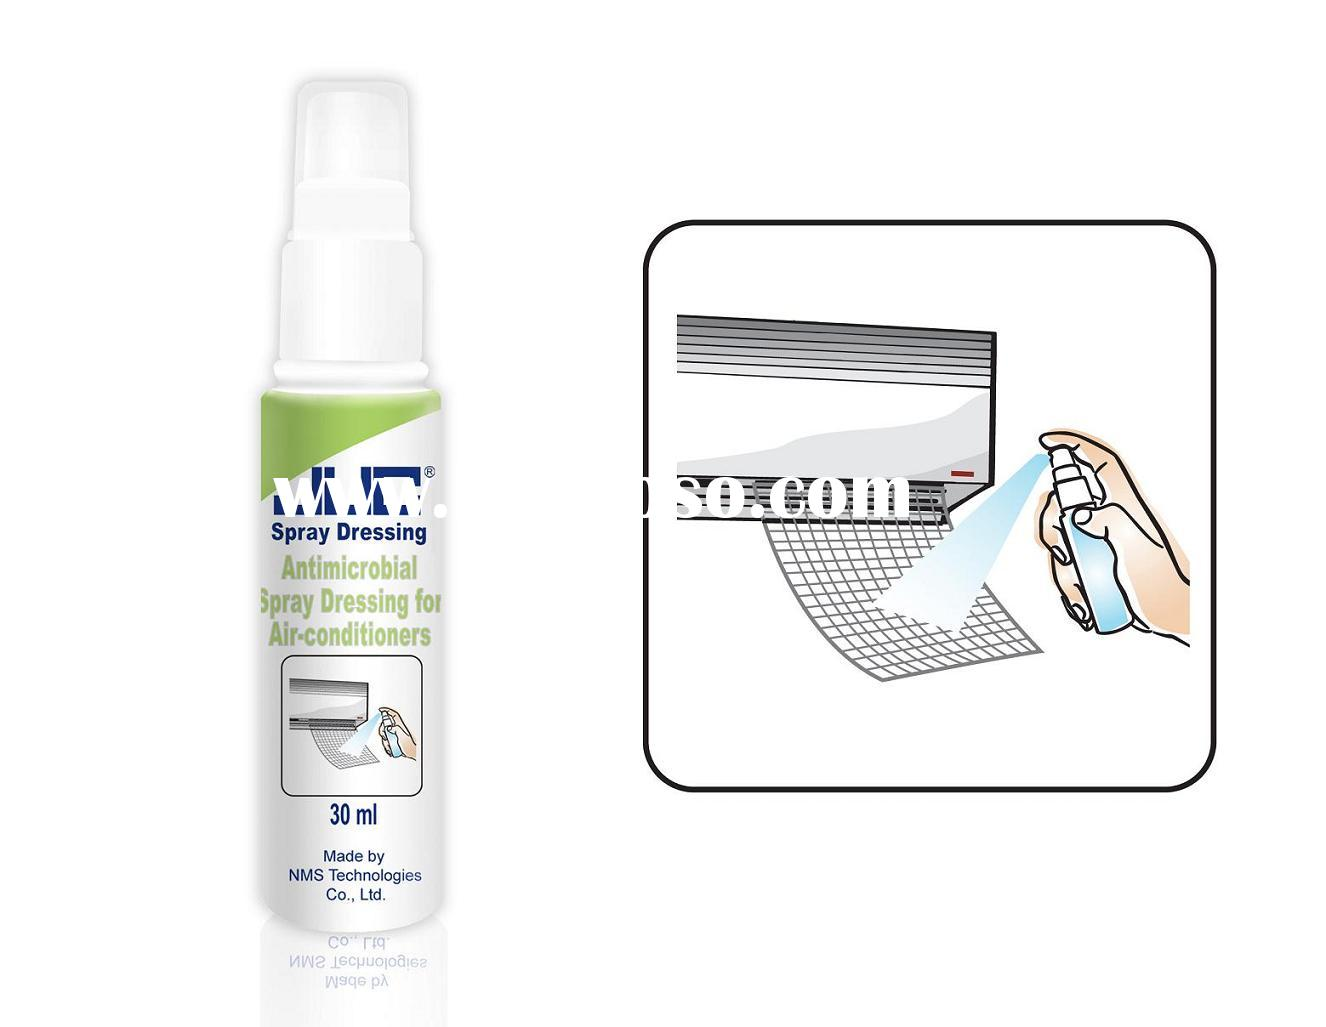 Antimicrobial Surface Cleaner Spray Dressing For Air-conditioners